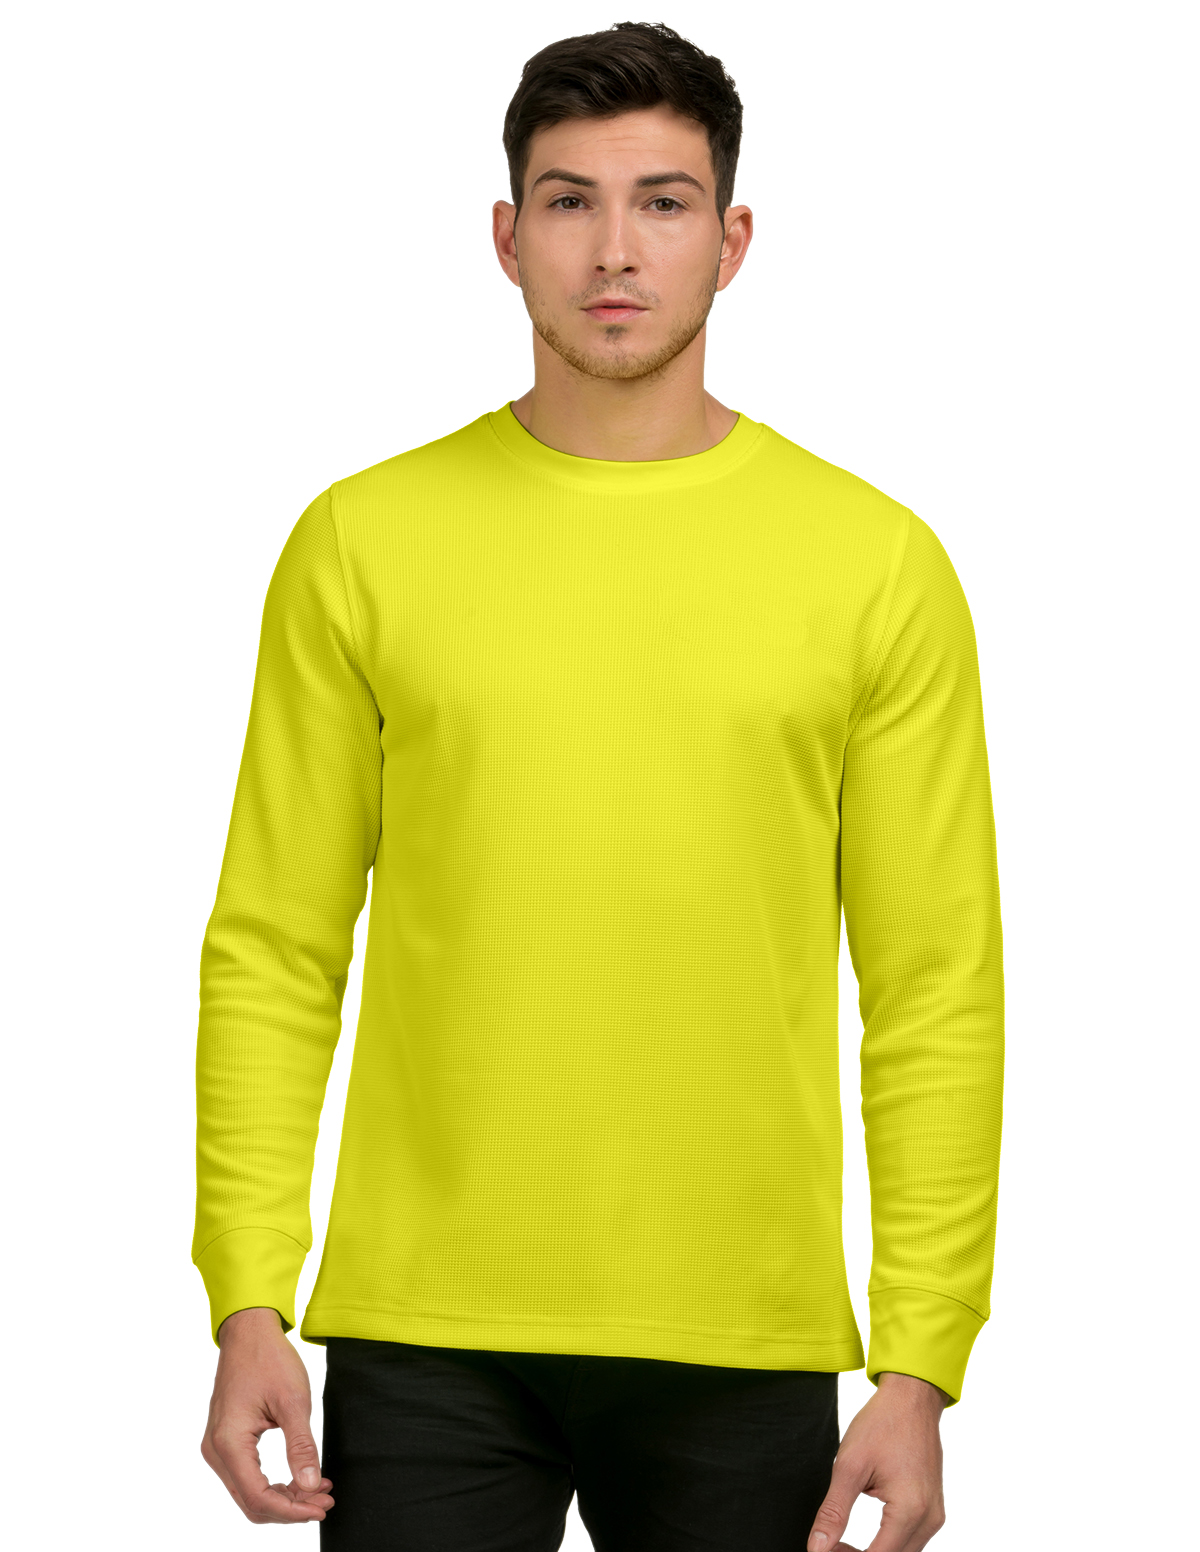 Tri-Mountain K500 - Essent Safety Long Sleeve Safety ...